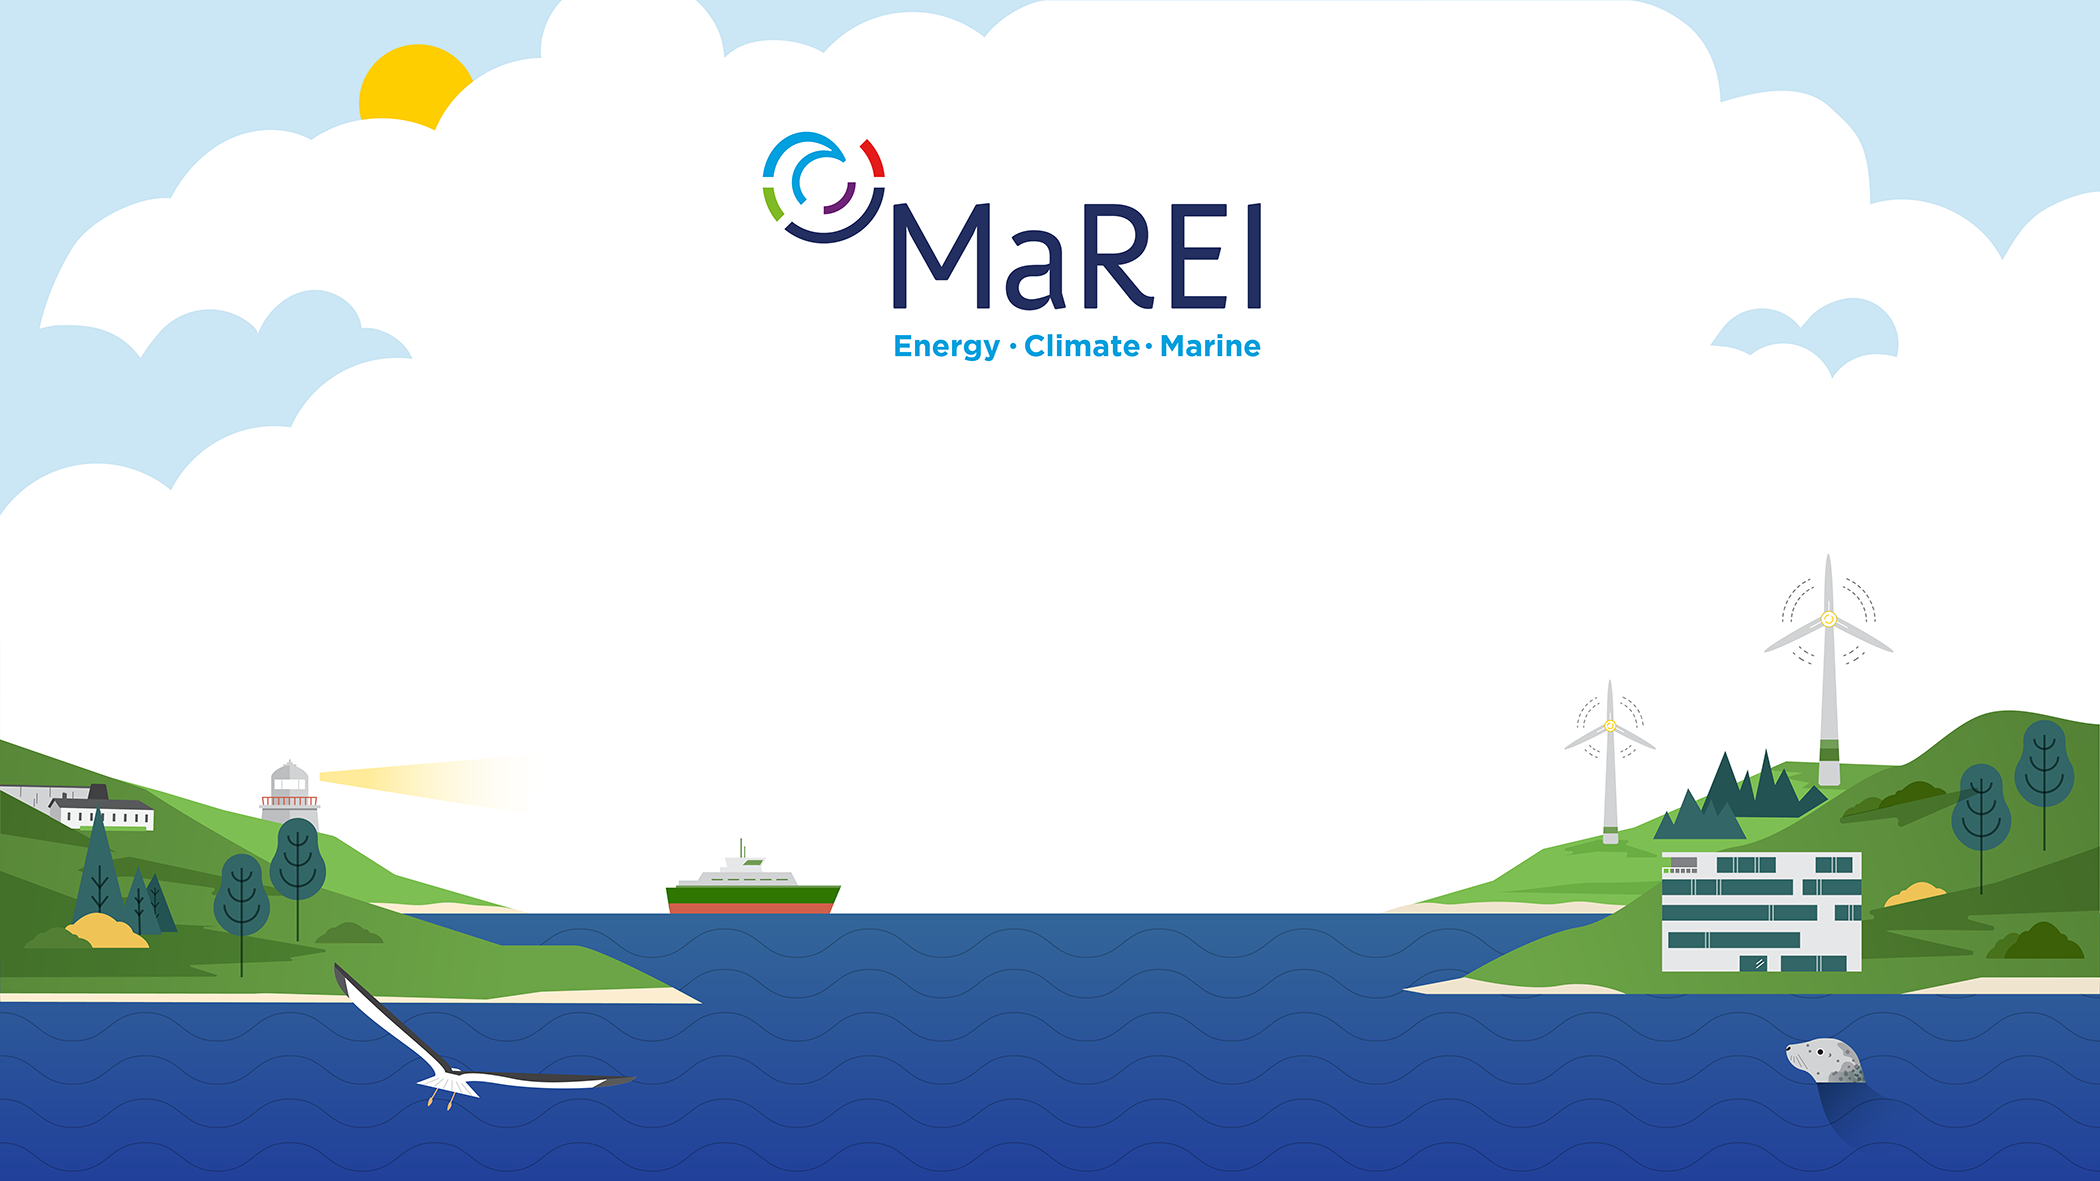 Background illustrated for the MaREI Centre, which needed a welcome sign display for screens during special events.